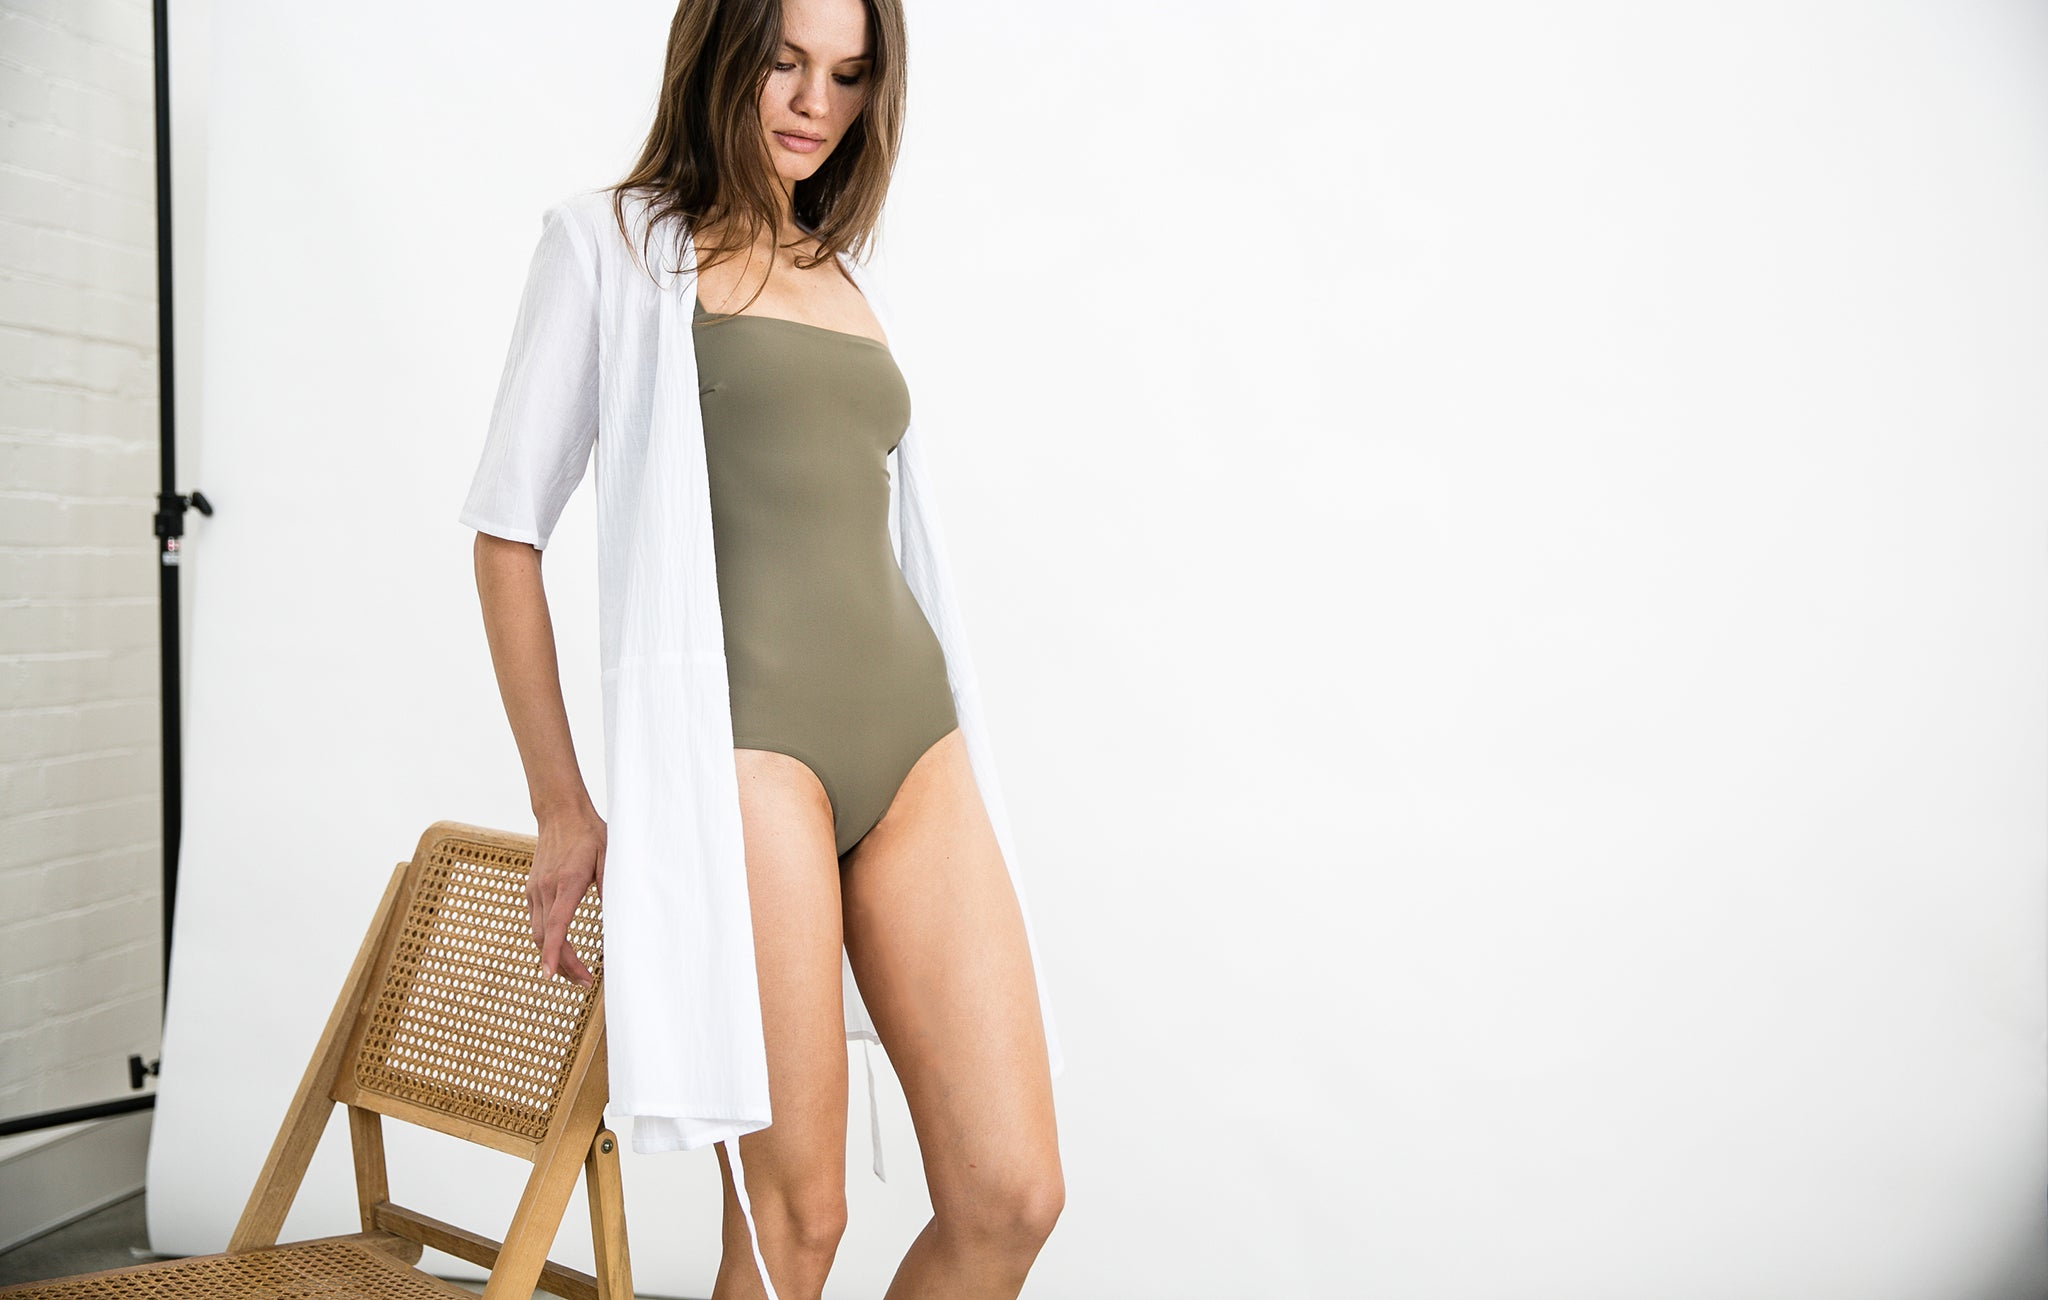 Matteau Swim and Matin Wrap around dress